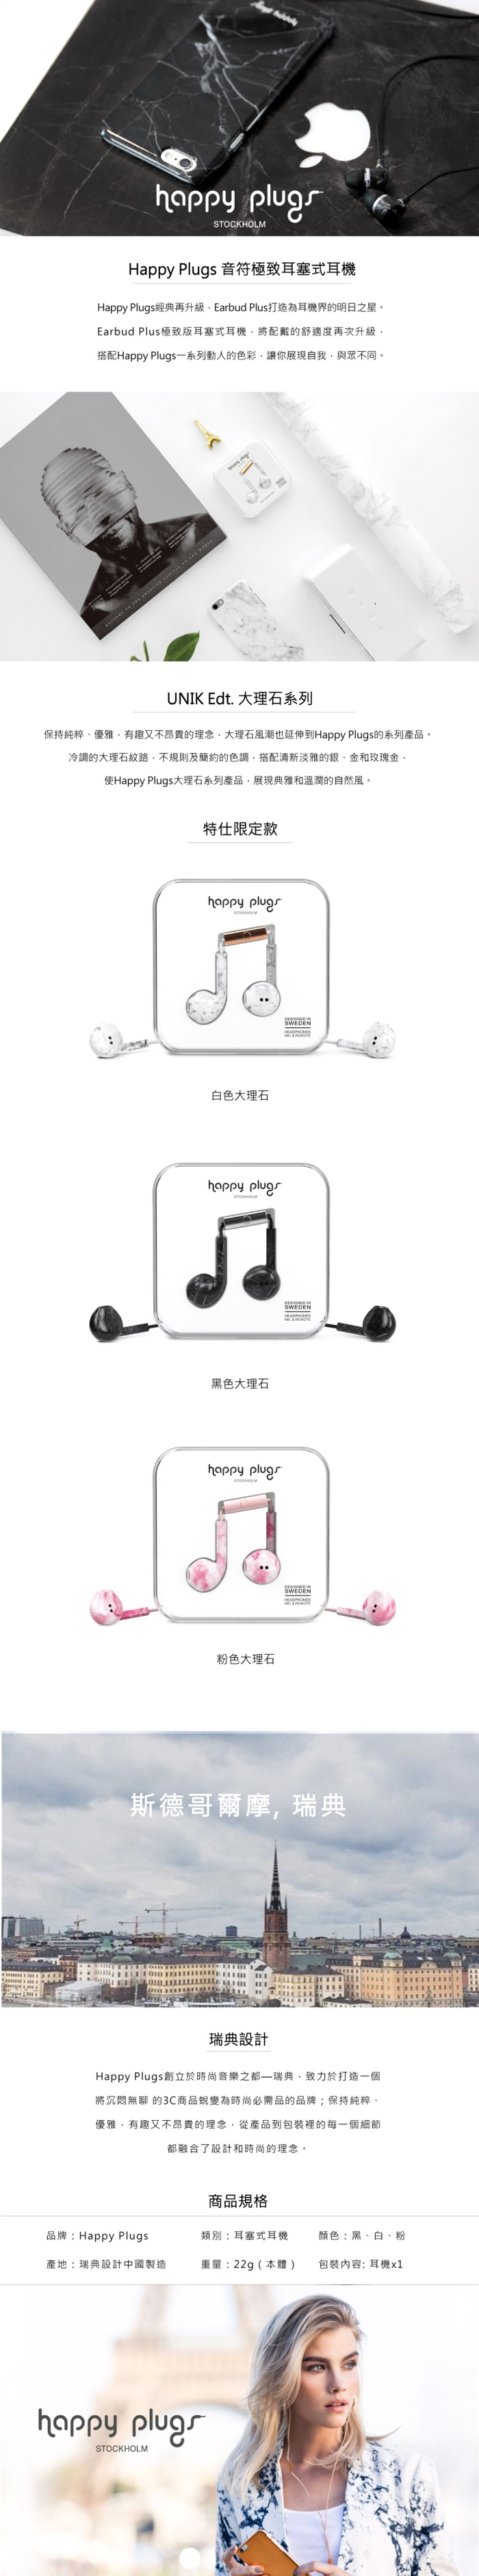 HAPPY PLUGS|Earbud Plus 極致耳塞式耳機(白大理石)